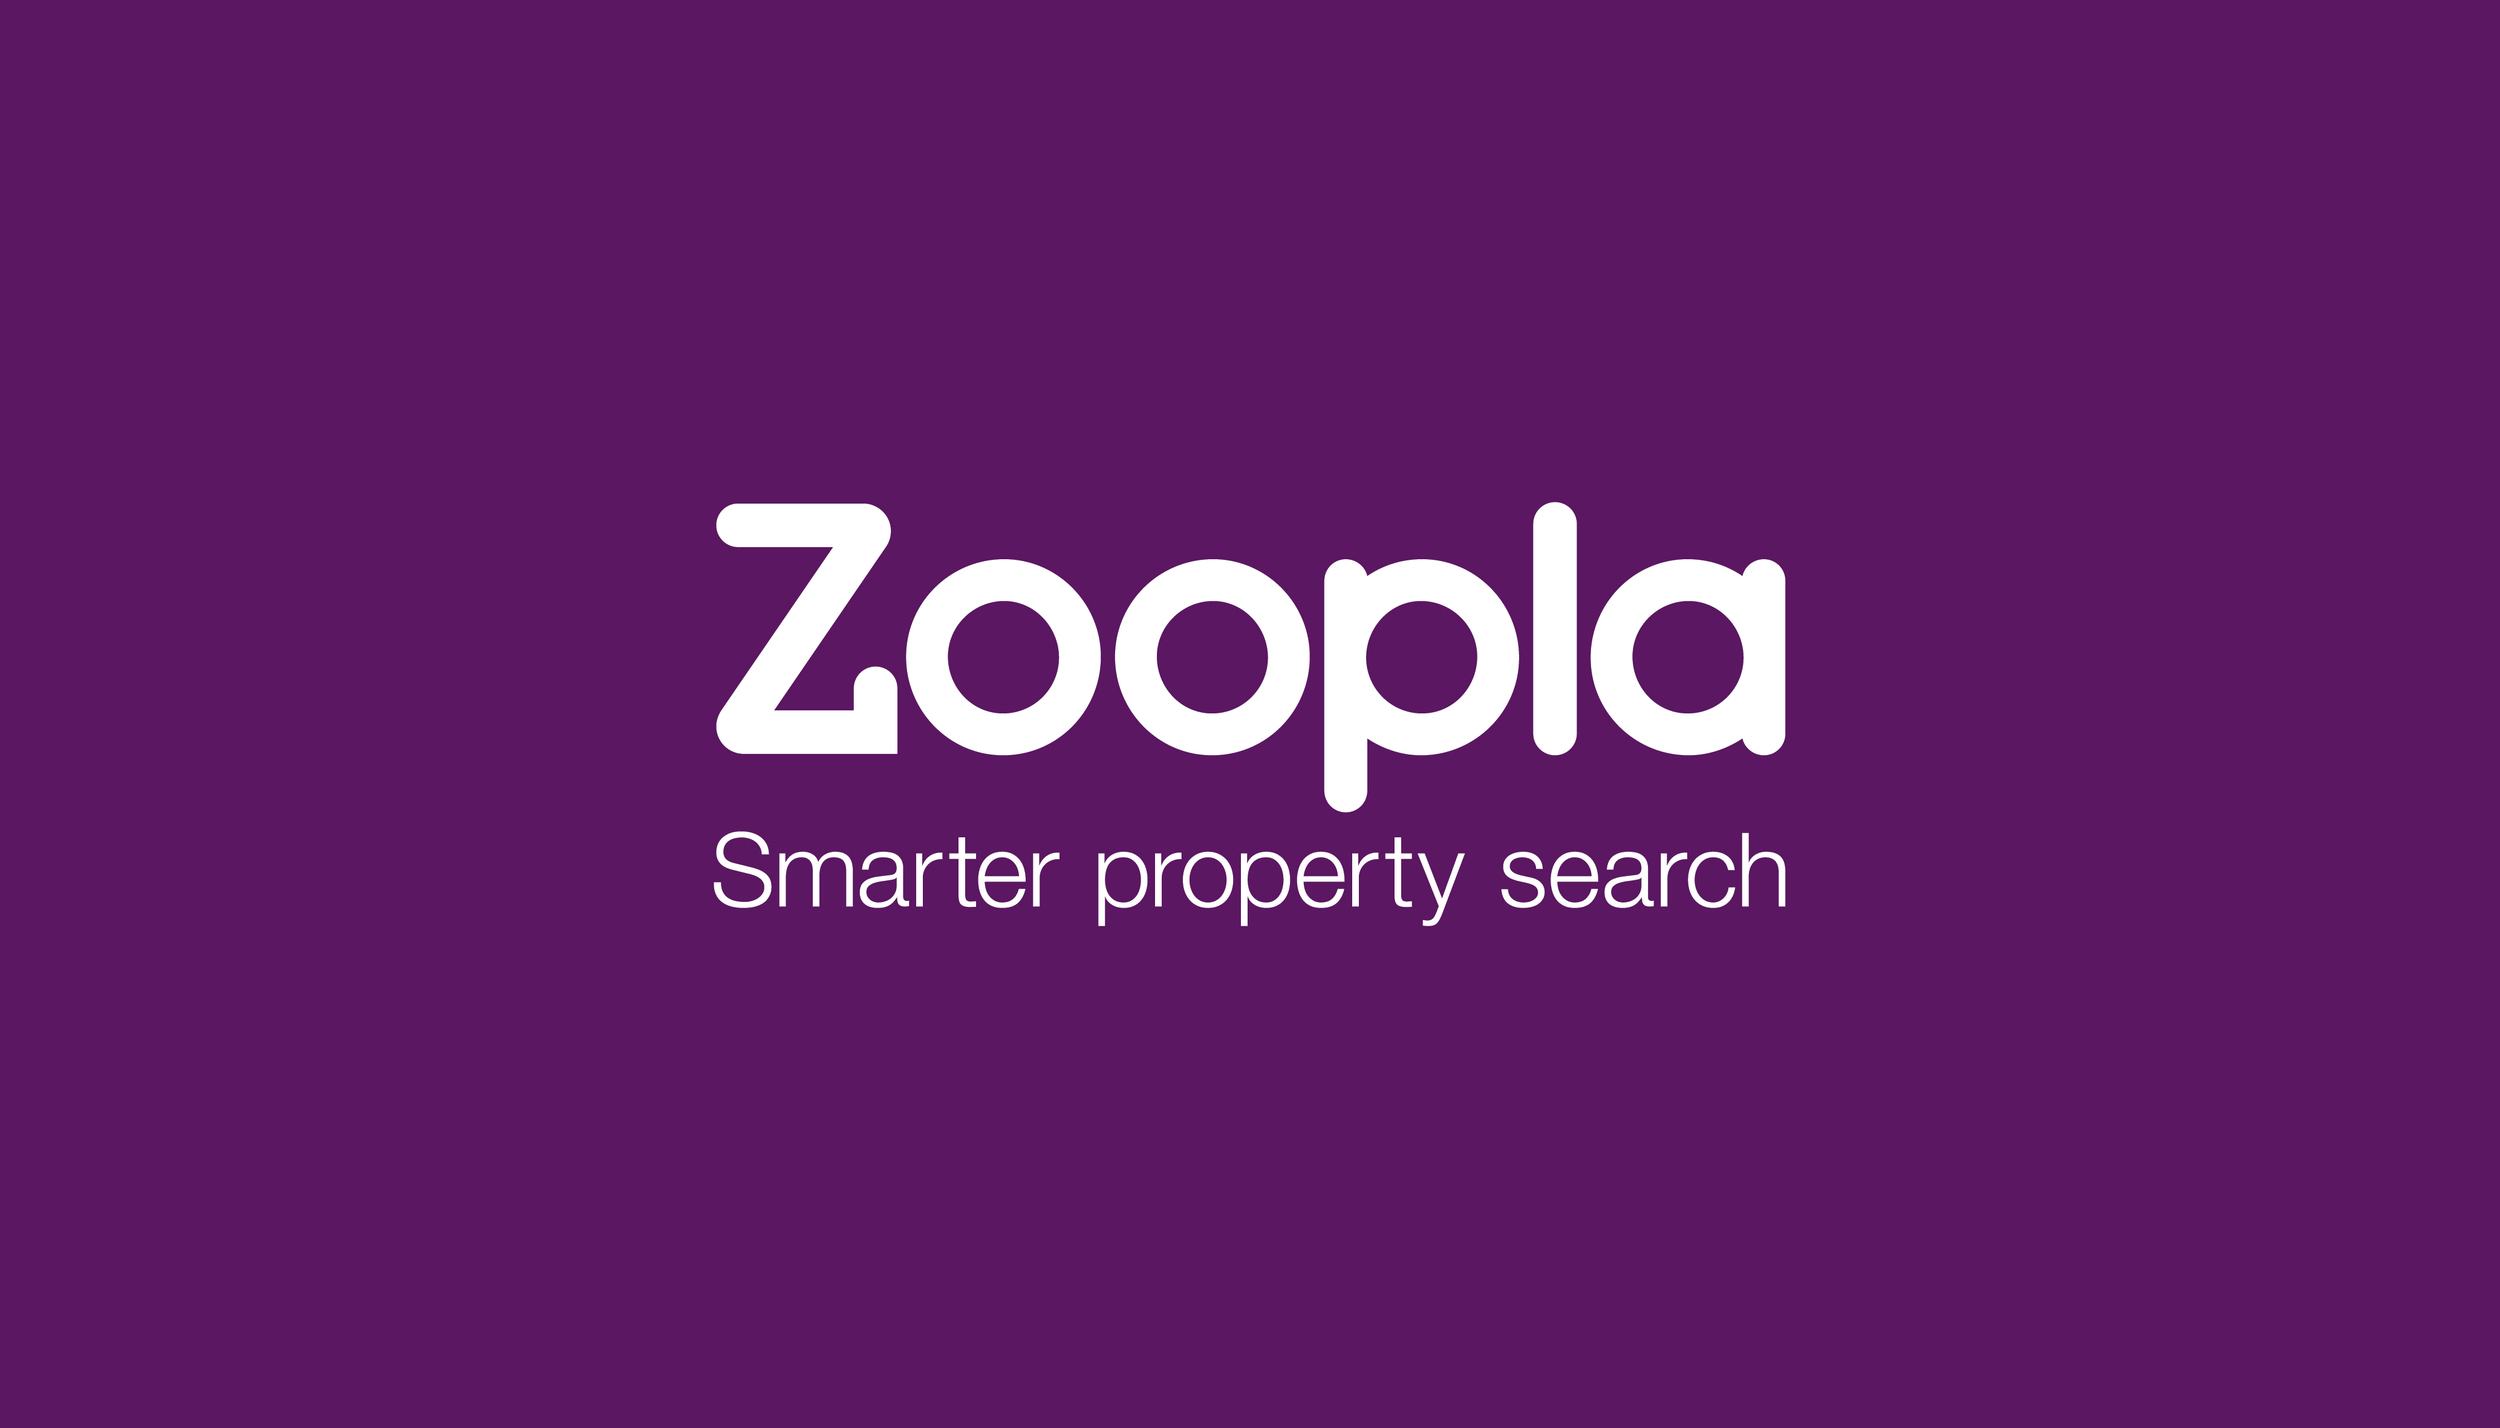 zoopla_wo_logo.jpg